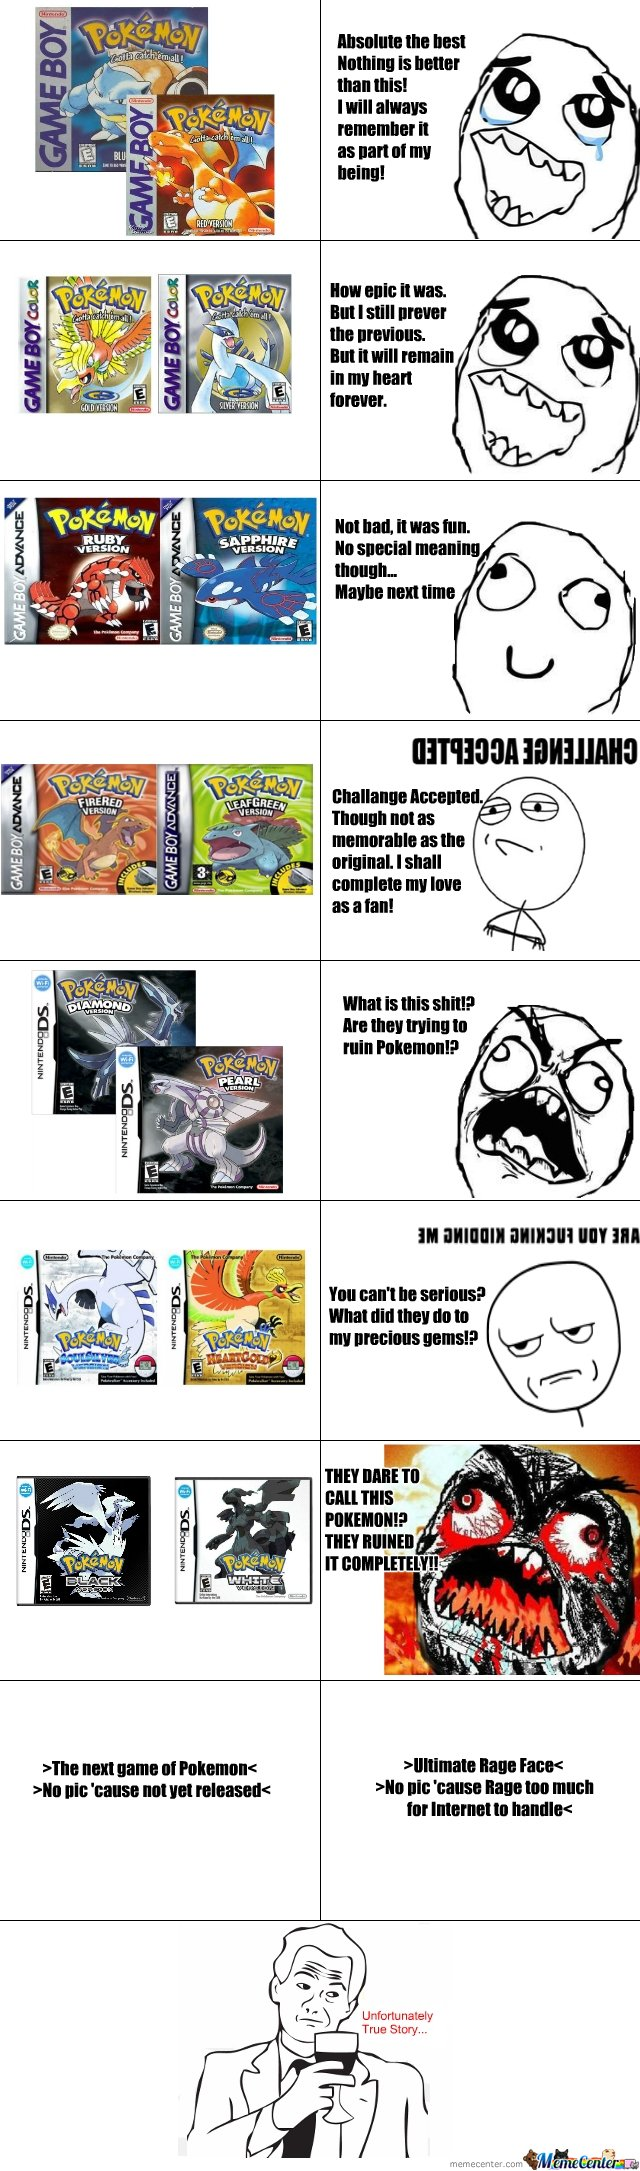 Pokemon Games through the age